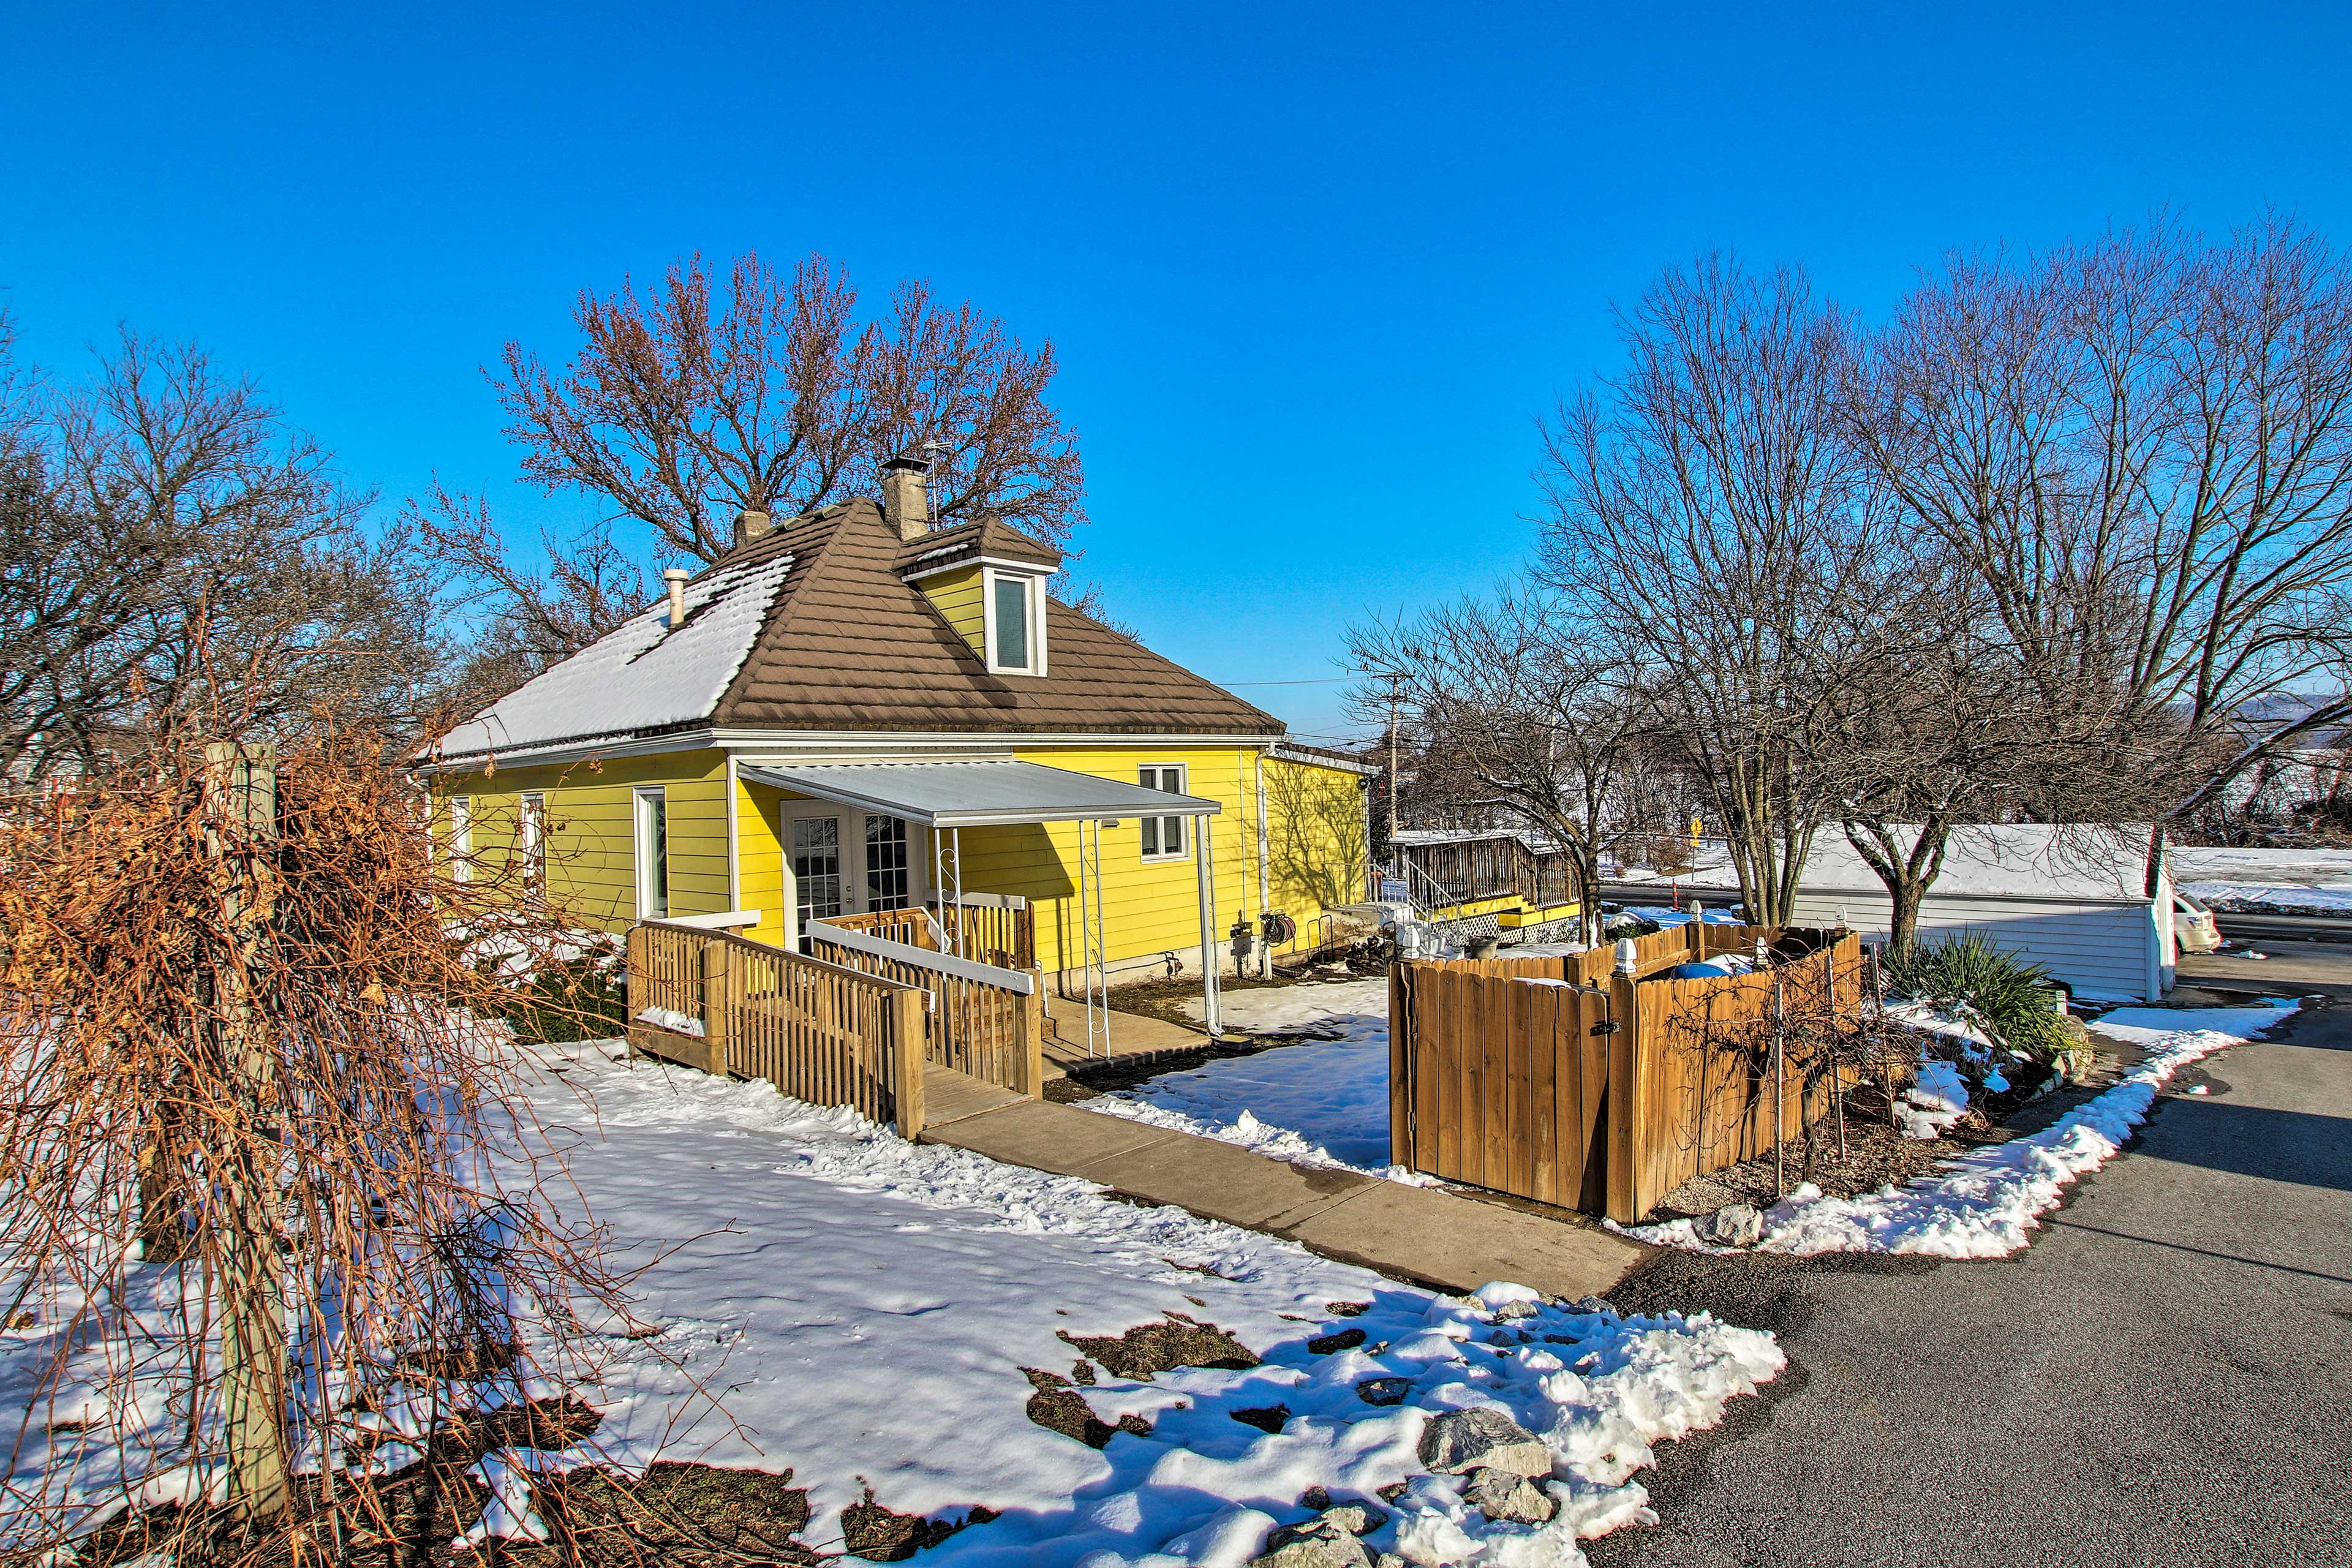 This yellow cottage is a 100+ year-old farmhouse!